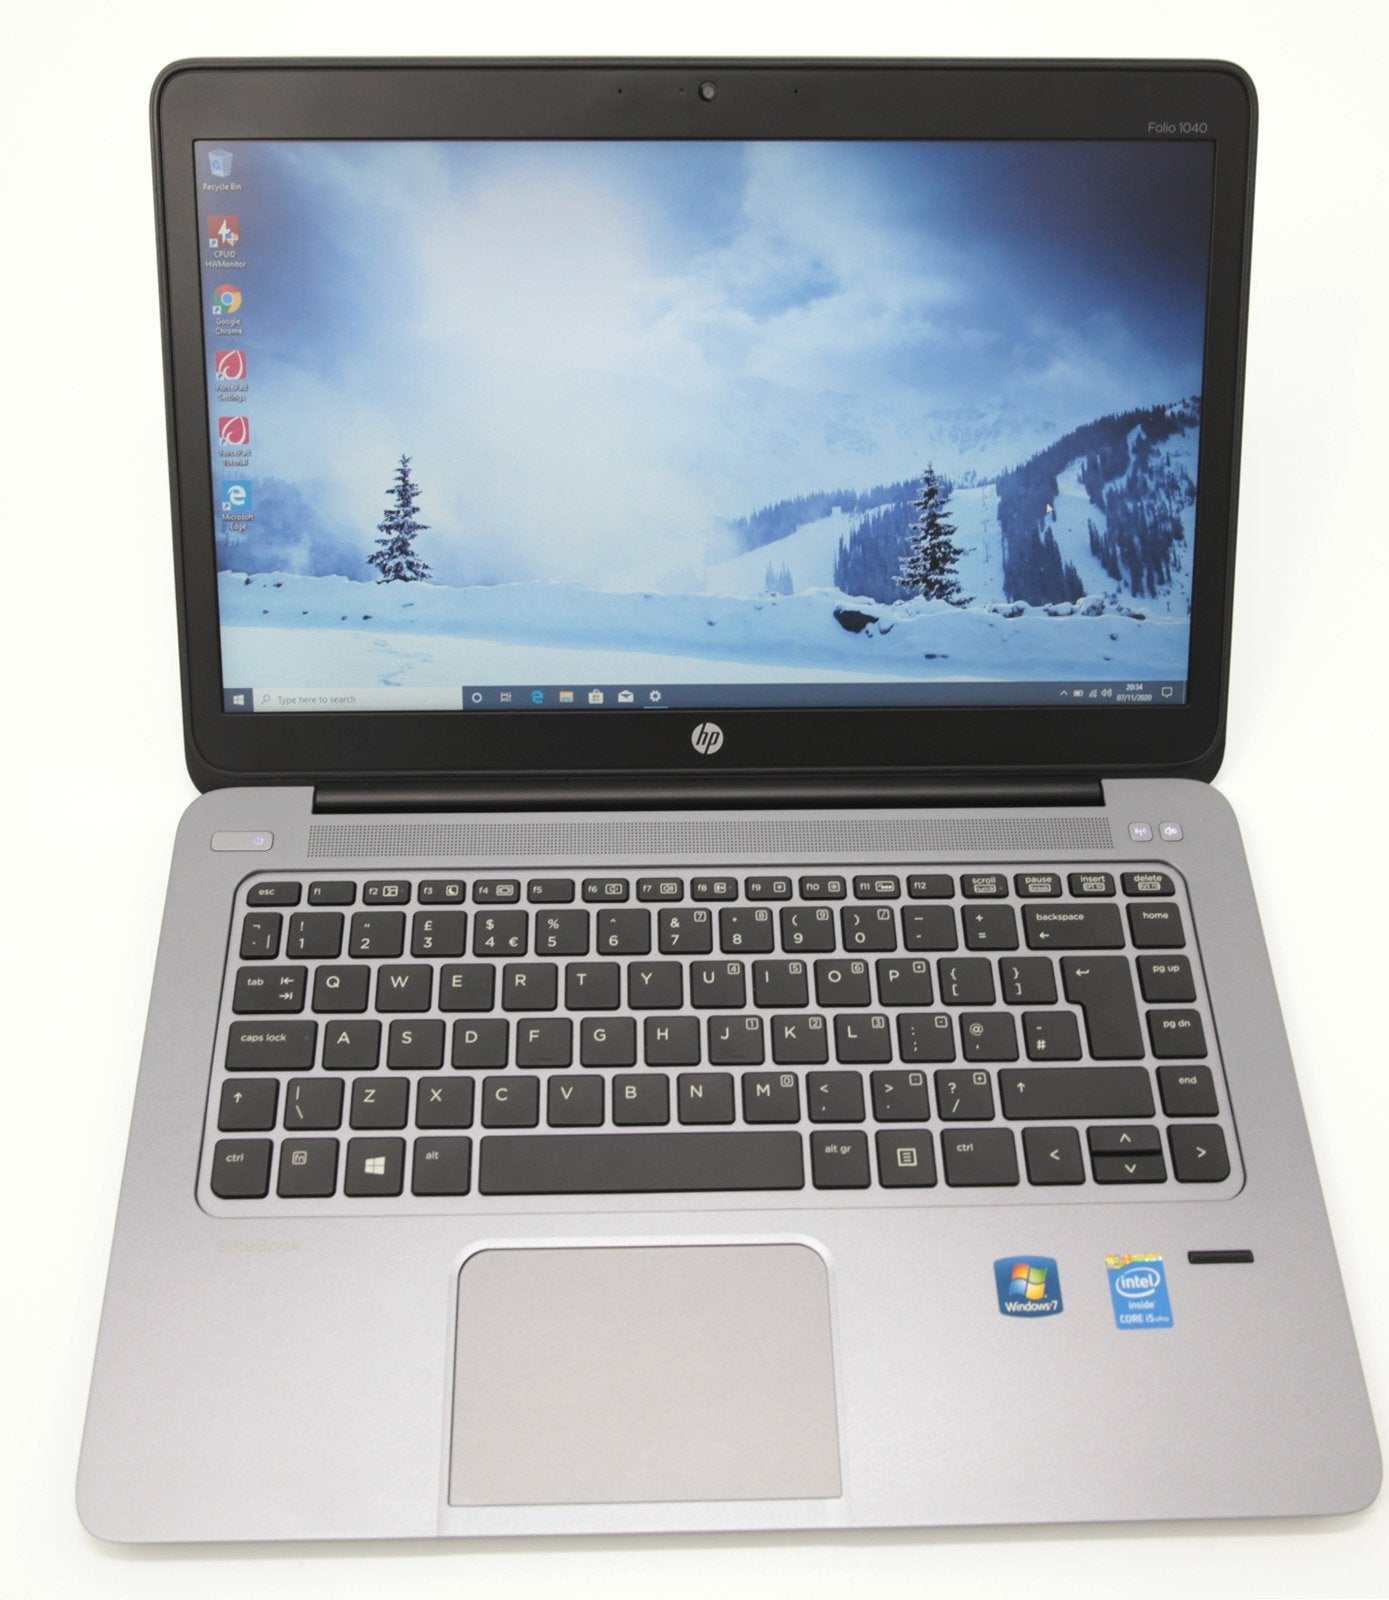 HP EliteBook 1040 G1 Laptop: Core i5, 240GB RAM, 4GB RAM, VAT Warranty 1.5KG - CruiseTech